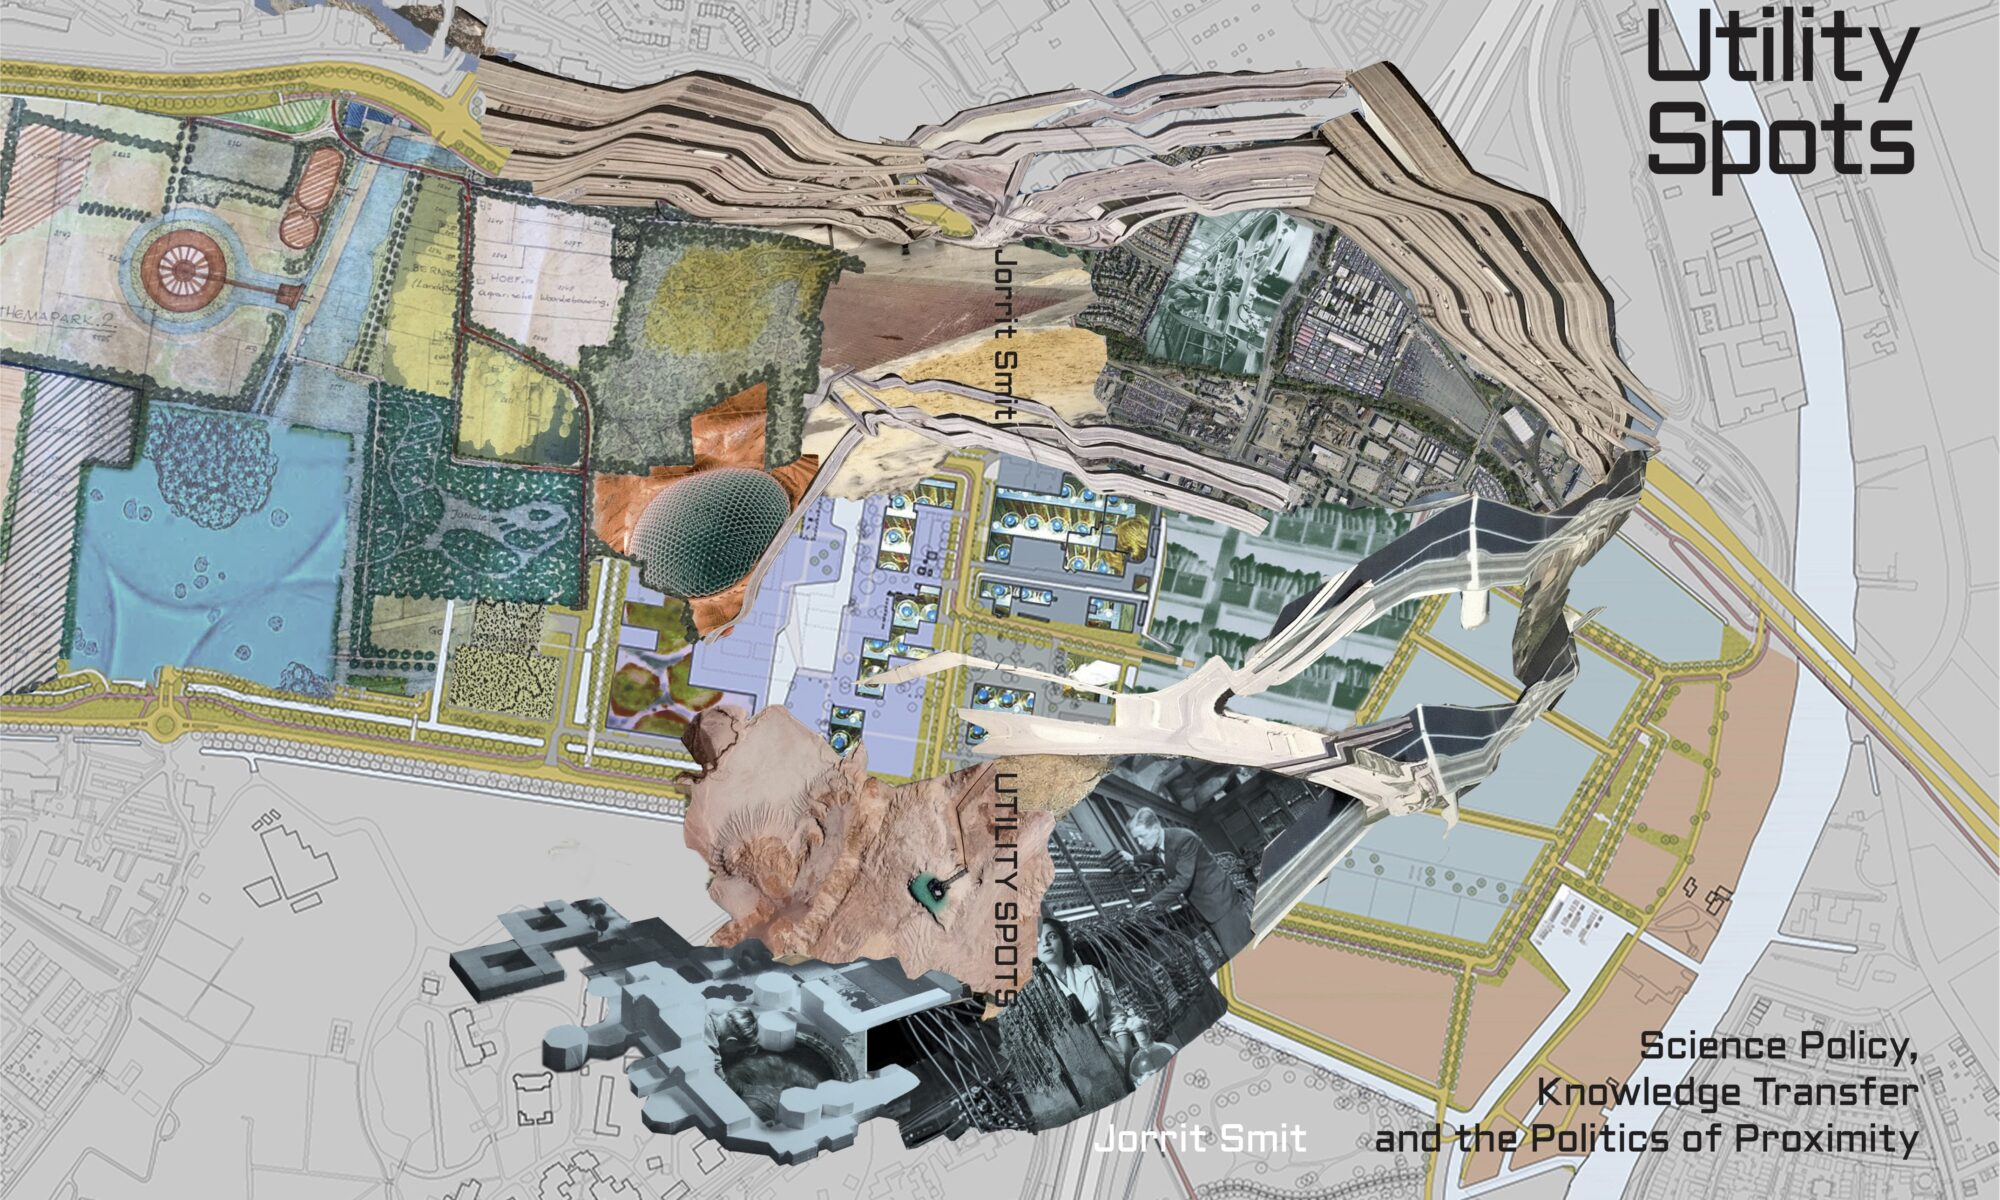 Utility Spots book cover showing artistic map of a campus